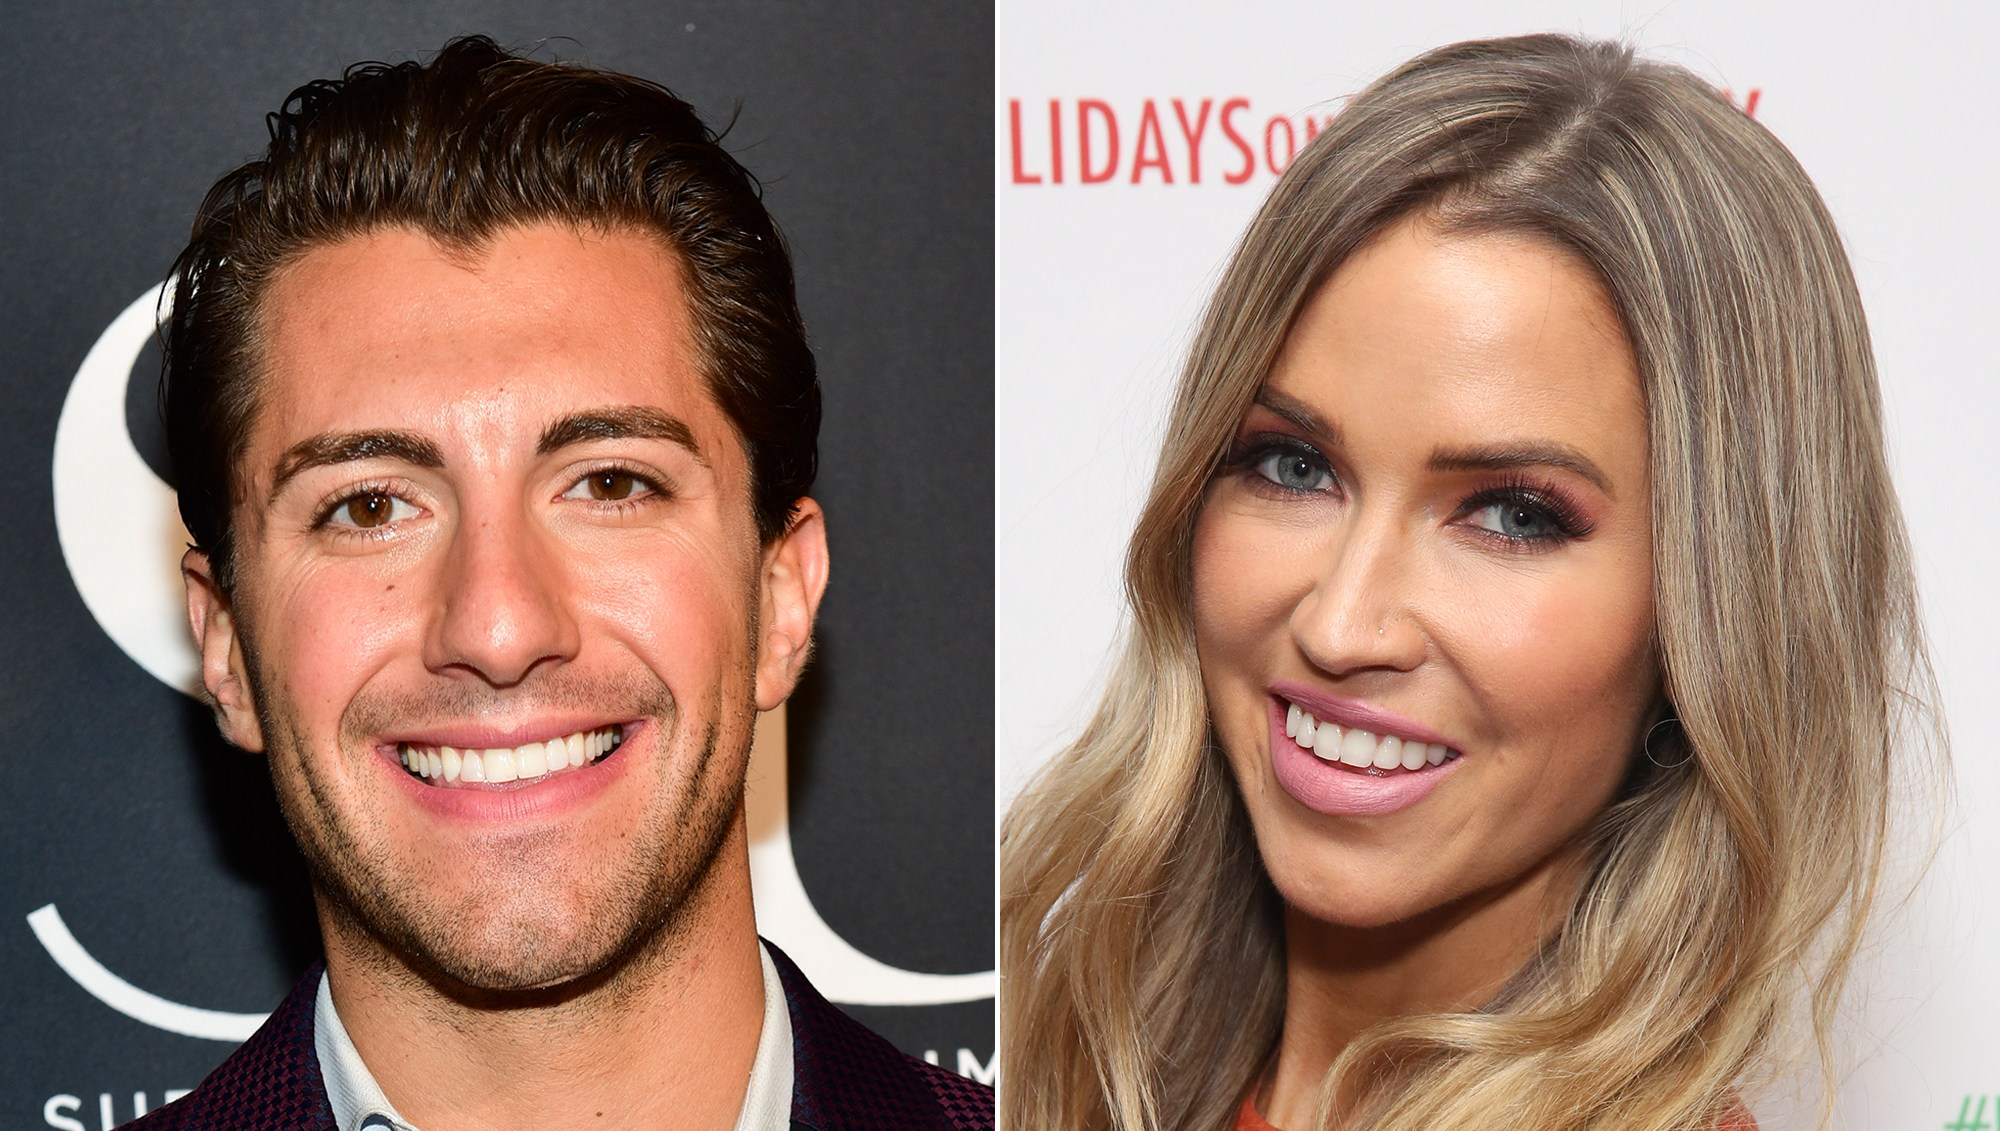 Jason Tartick Confirms He and Kaitlyn Bristowe Are Dating, Says It's Been 'About a Month'